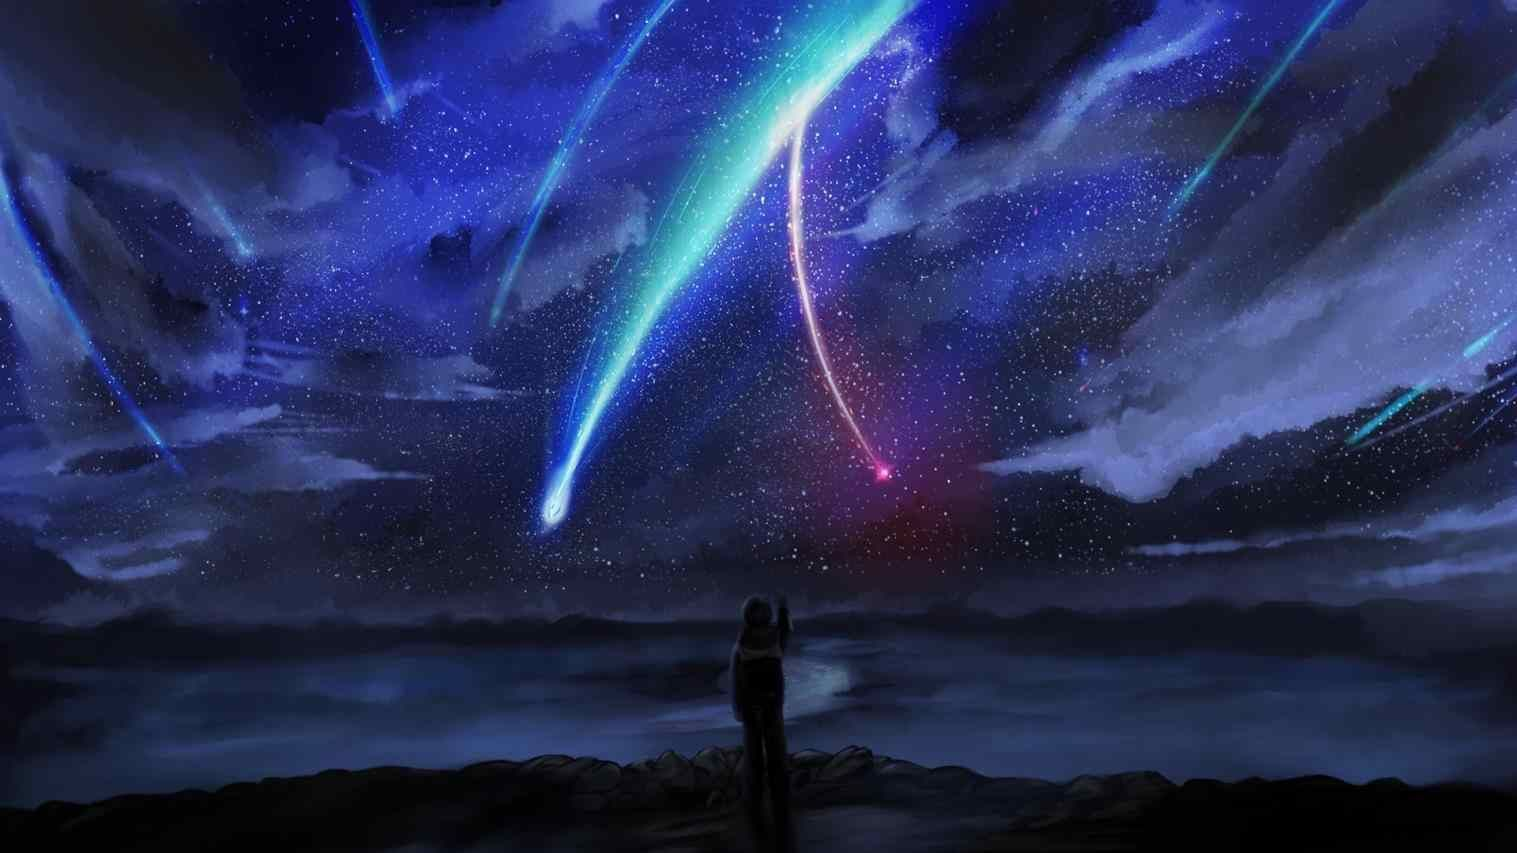 Dark Anime Scenery Wallpapers Desktop With Images Anime